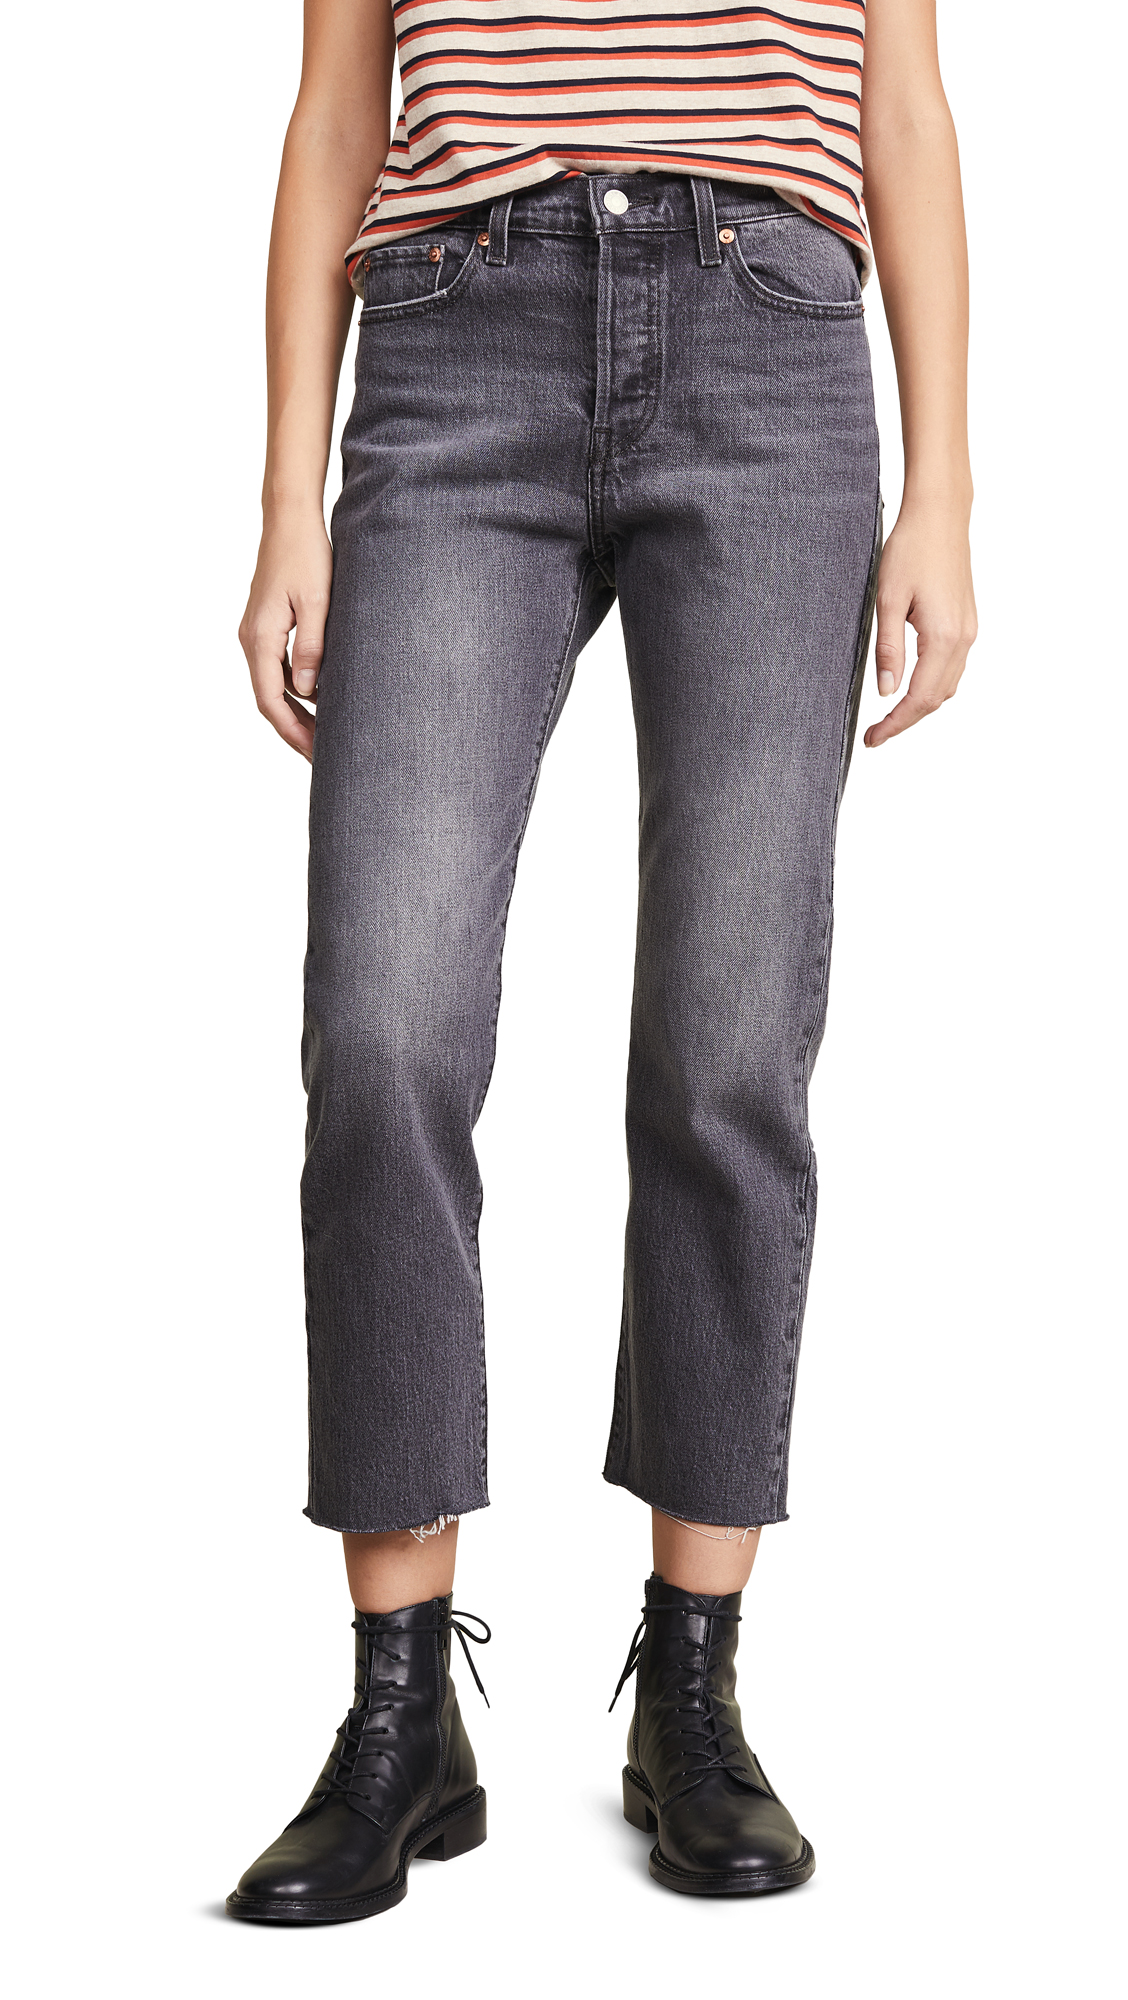 Levis Wedgie Straight Jeans - Black Ember